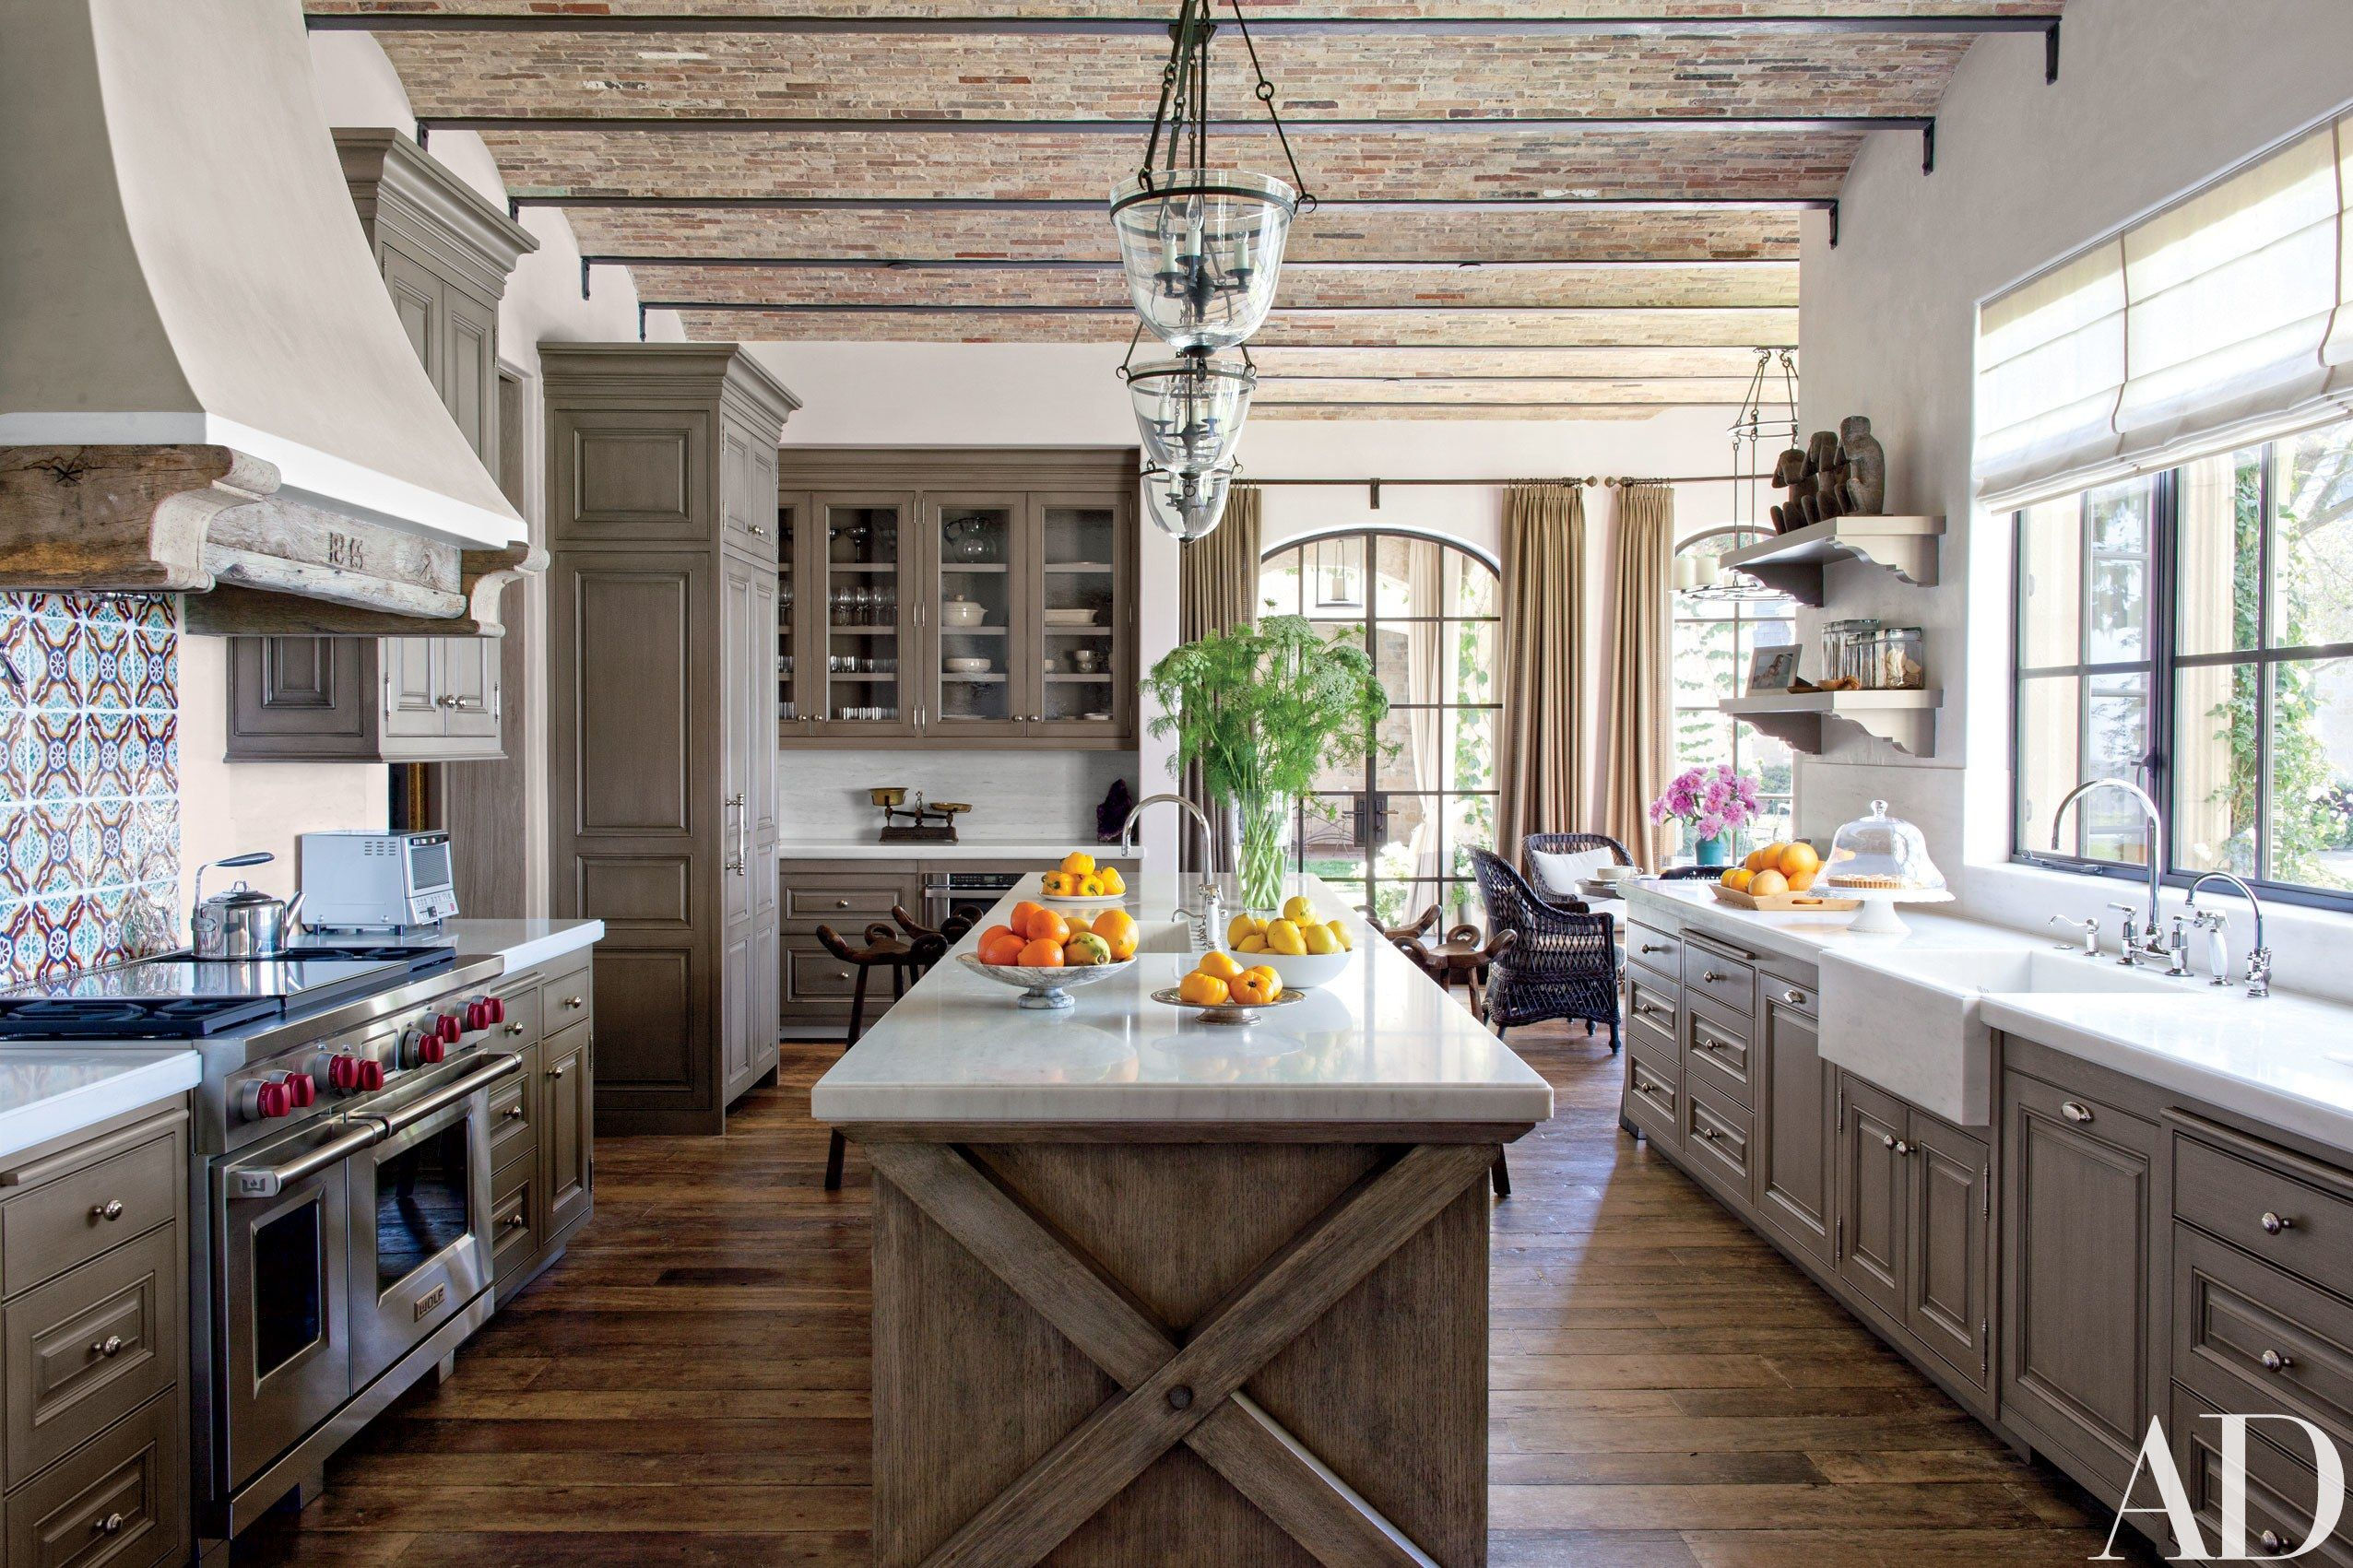 29 rustic kitchen ideas youll want to copy cucina pinterest